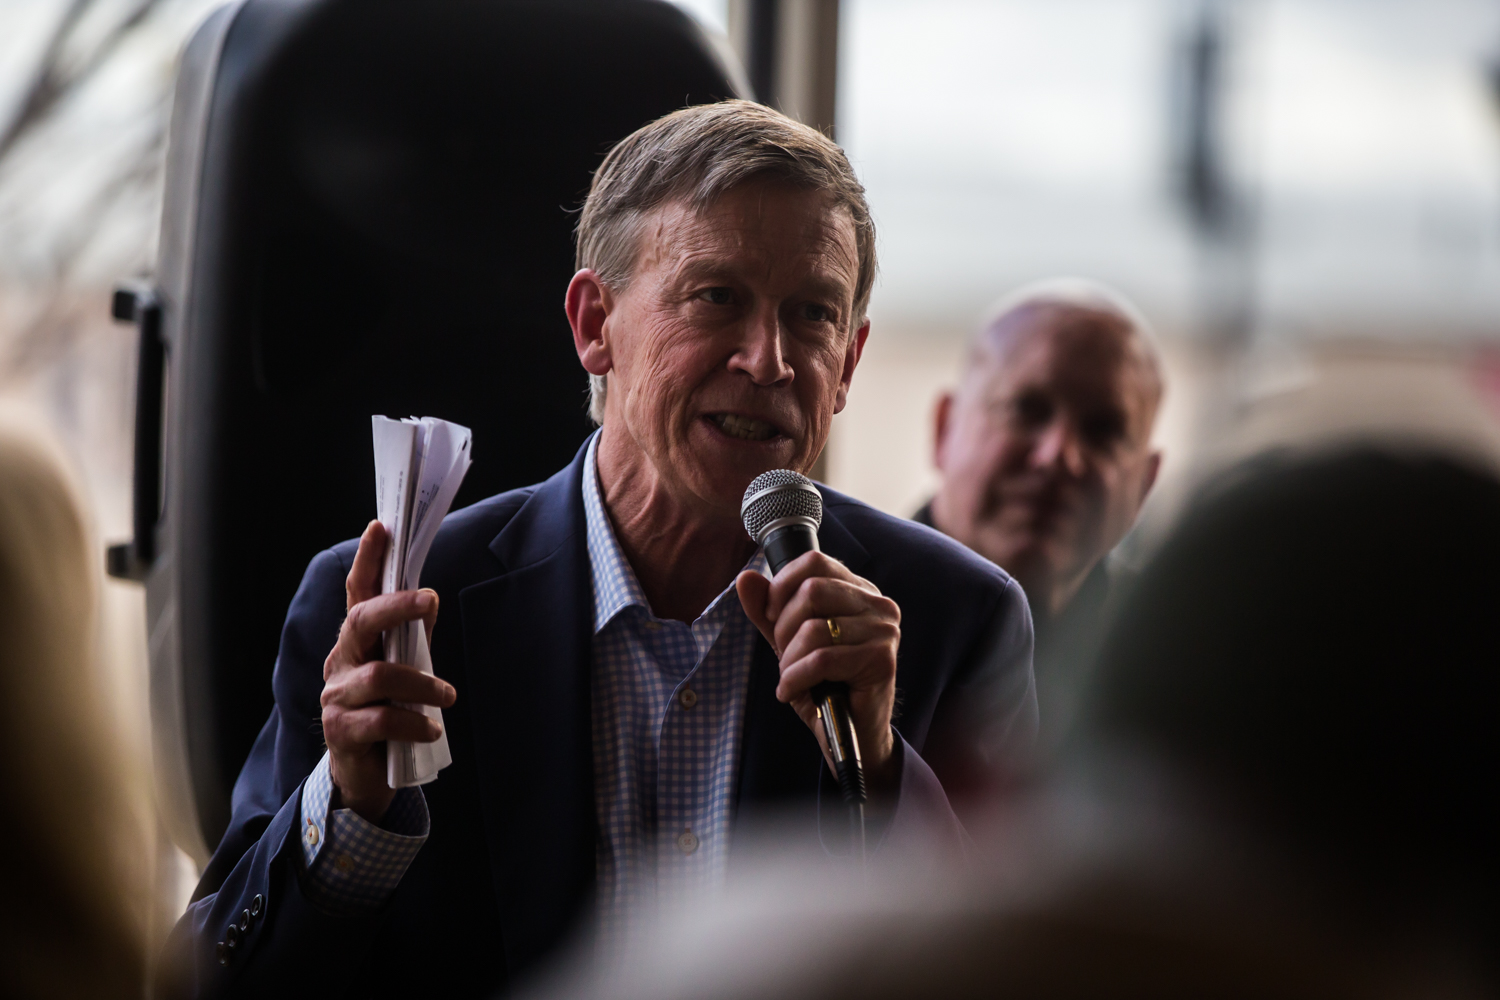 Former Colorado Gov. John Hickenlooper speaks at Backpocket Brewery in Coralville on Friday, April 12, 2019.